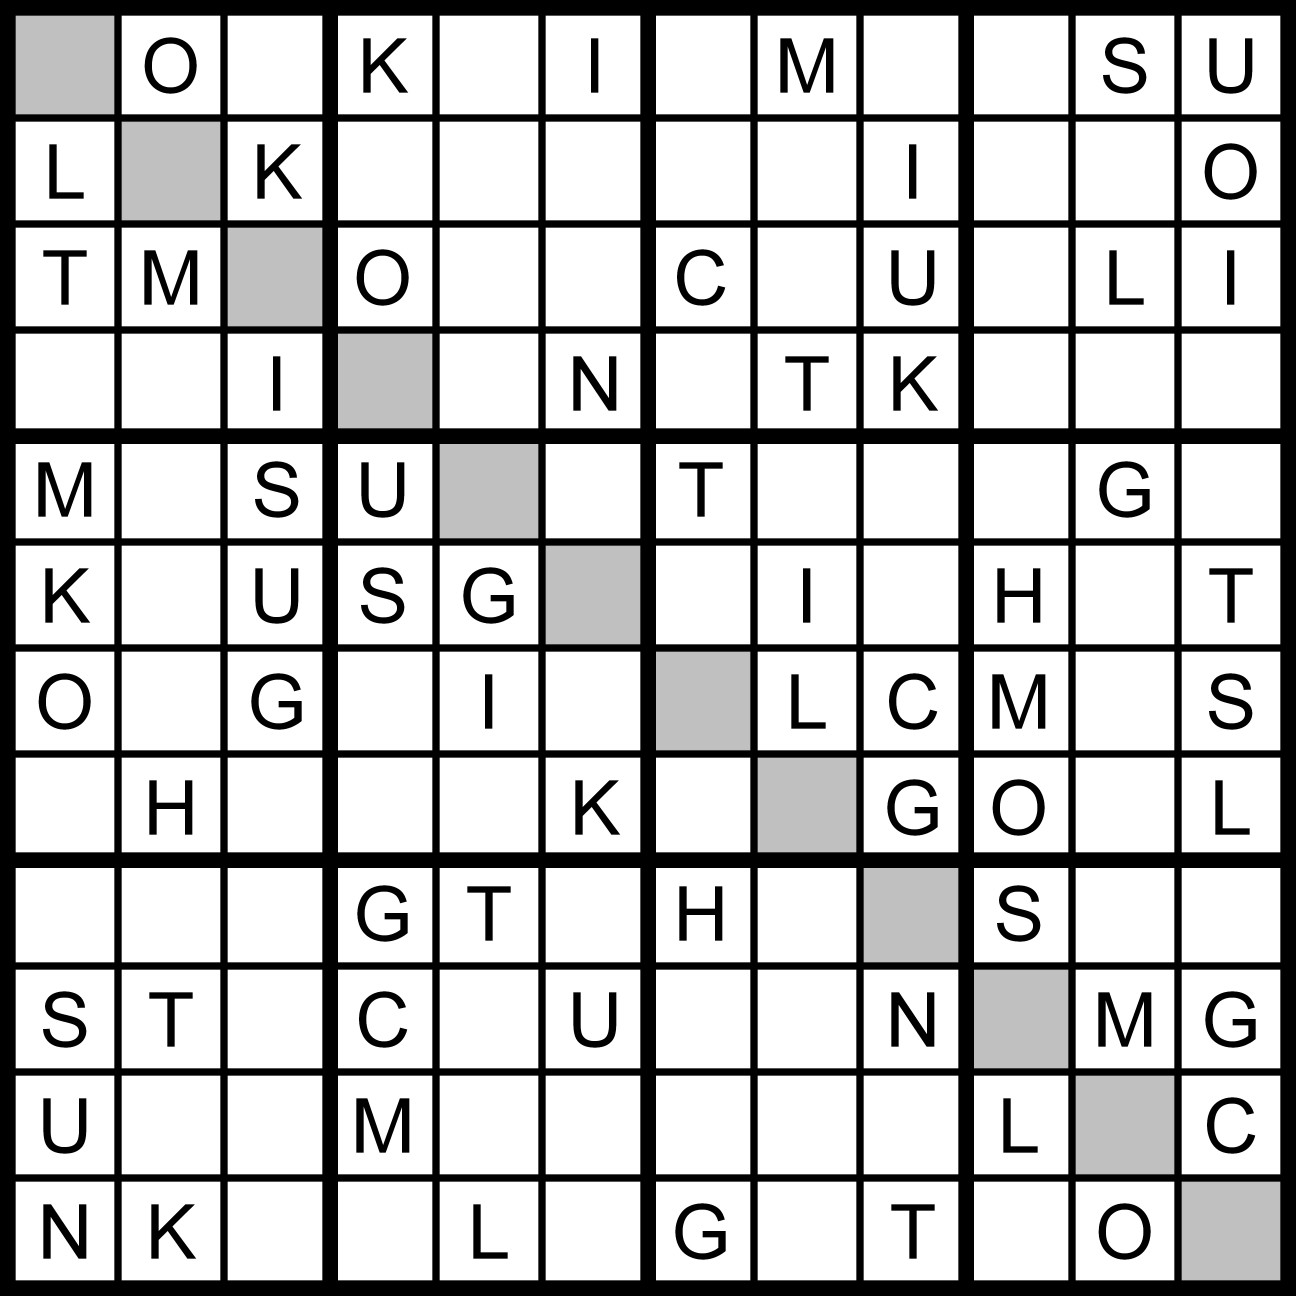 picture relating to 16 Square Sudoku Printable called Magic Term Sq.: July 2011